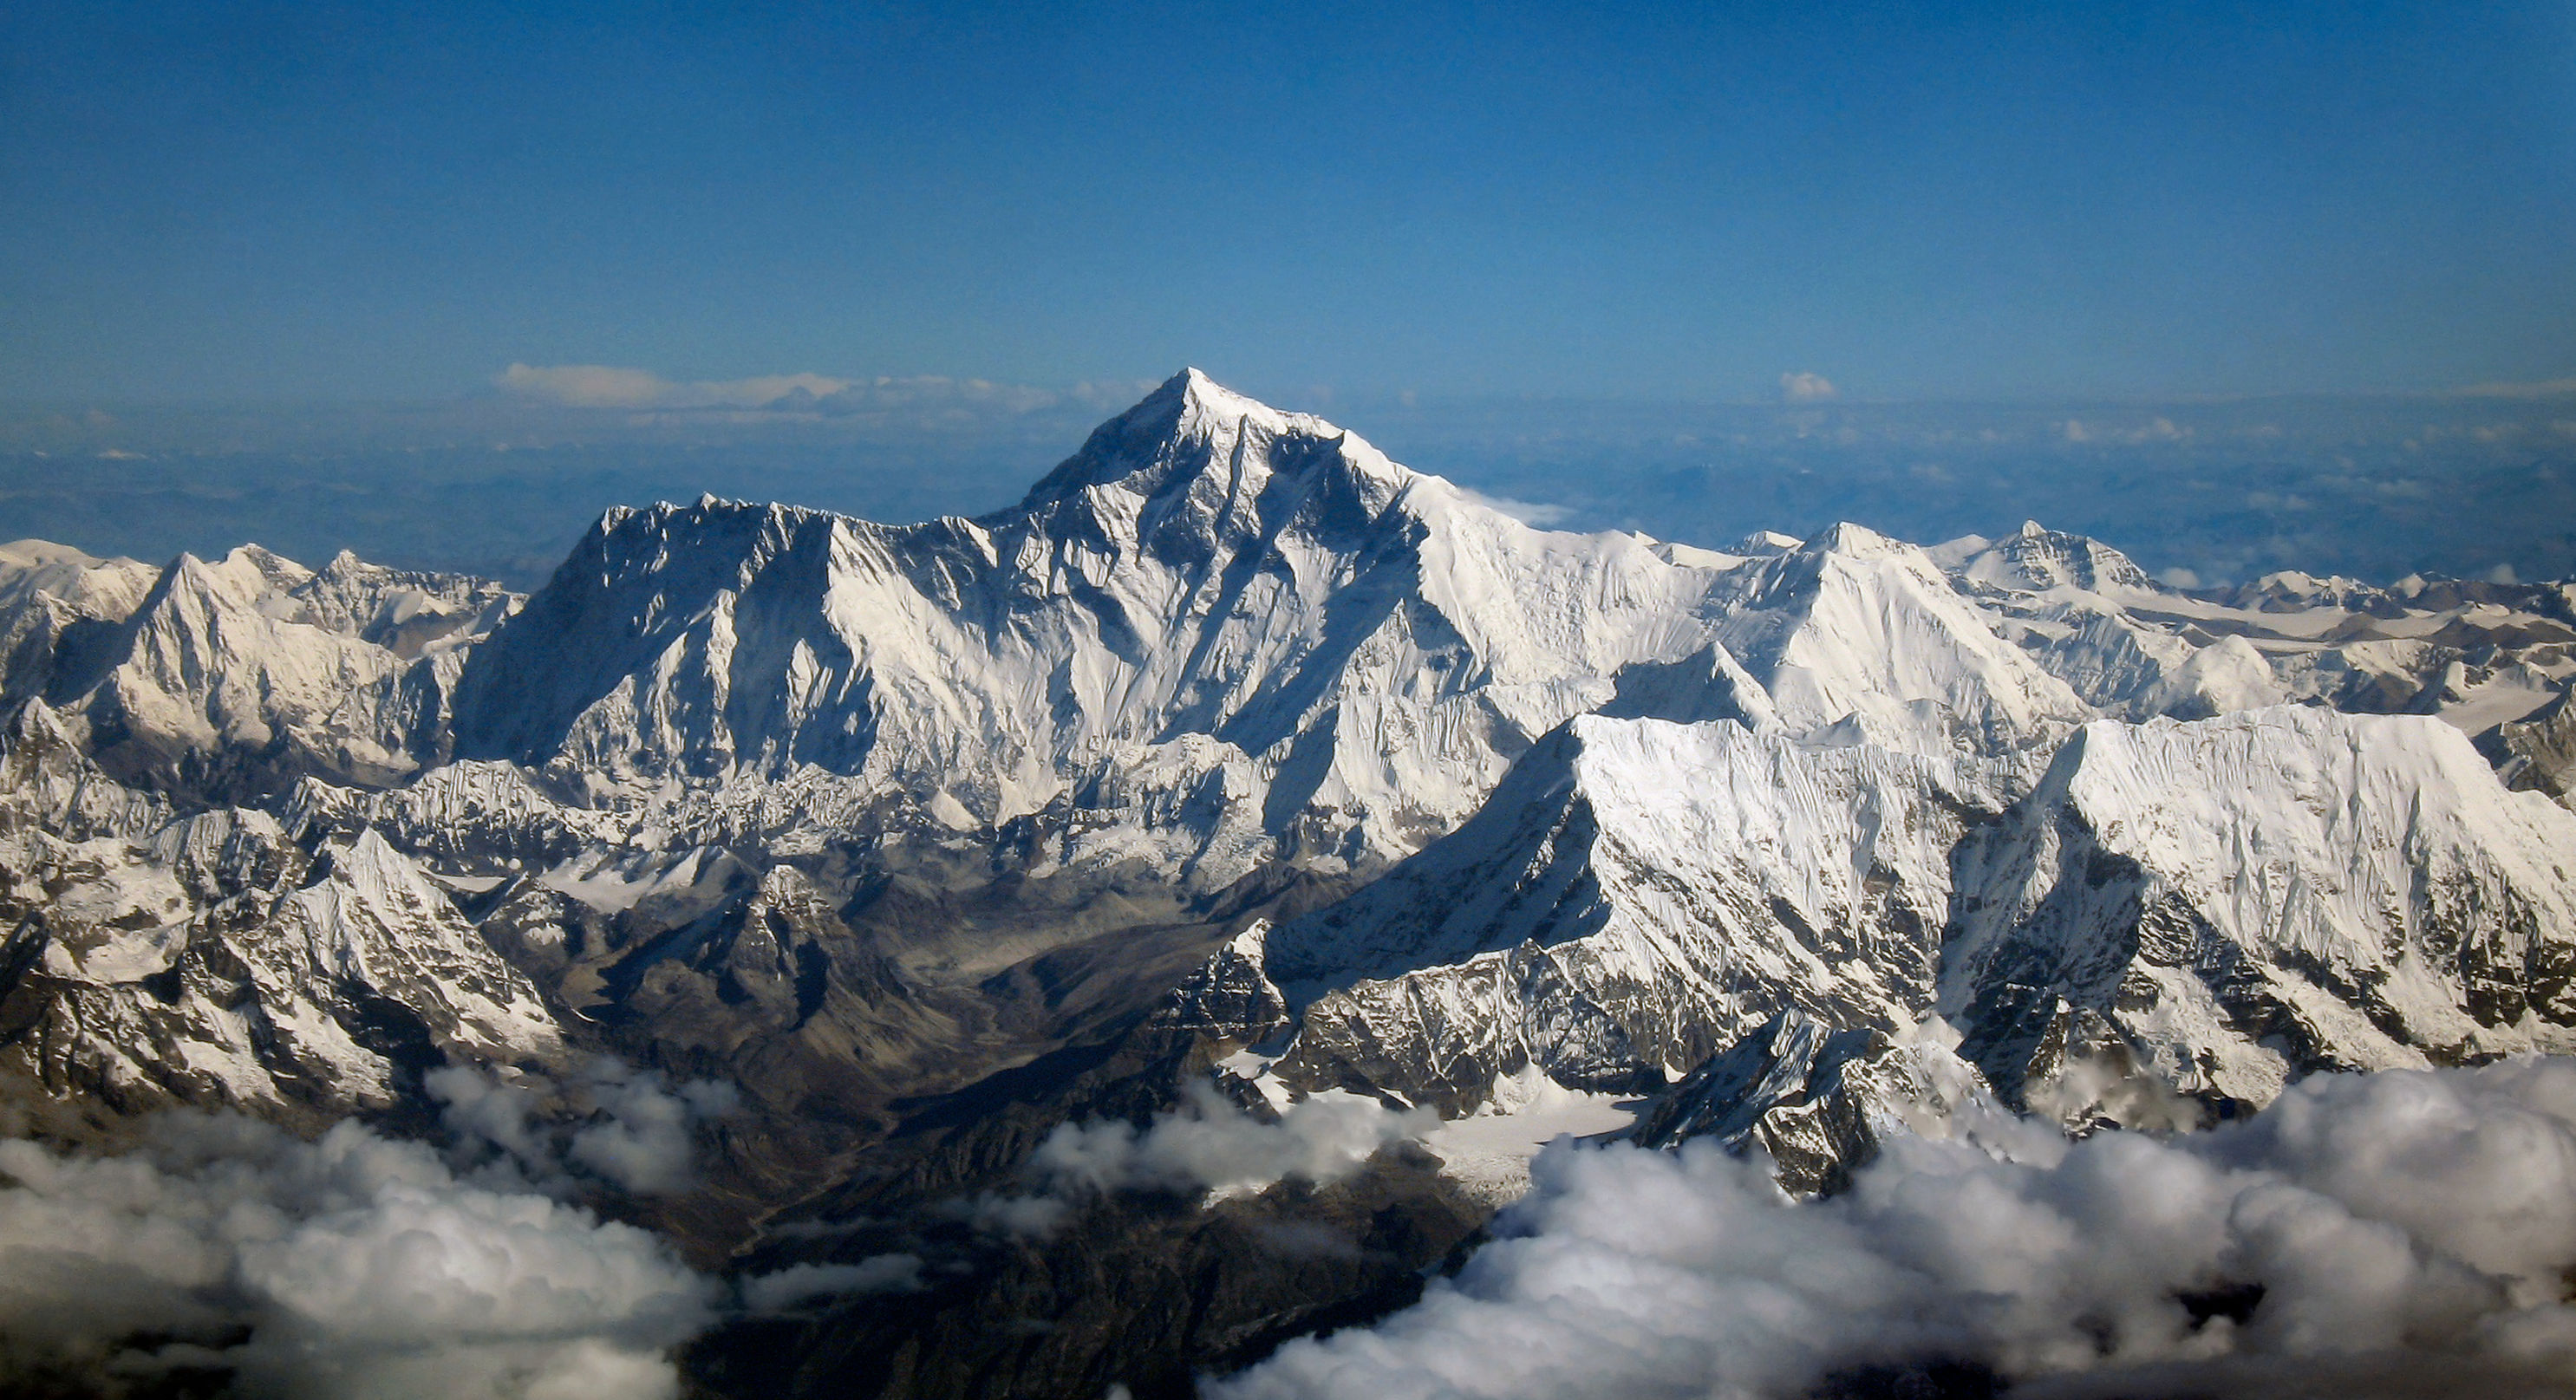 a-graveyard-at-26-000-feet-the-tragic-fate-of-those-left-behind-on-mount-everest-373278